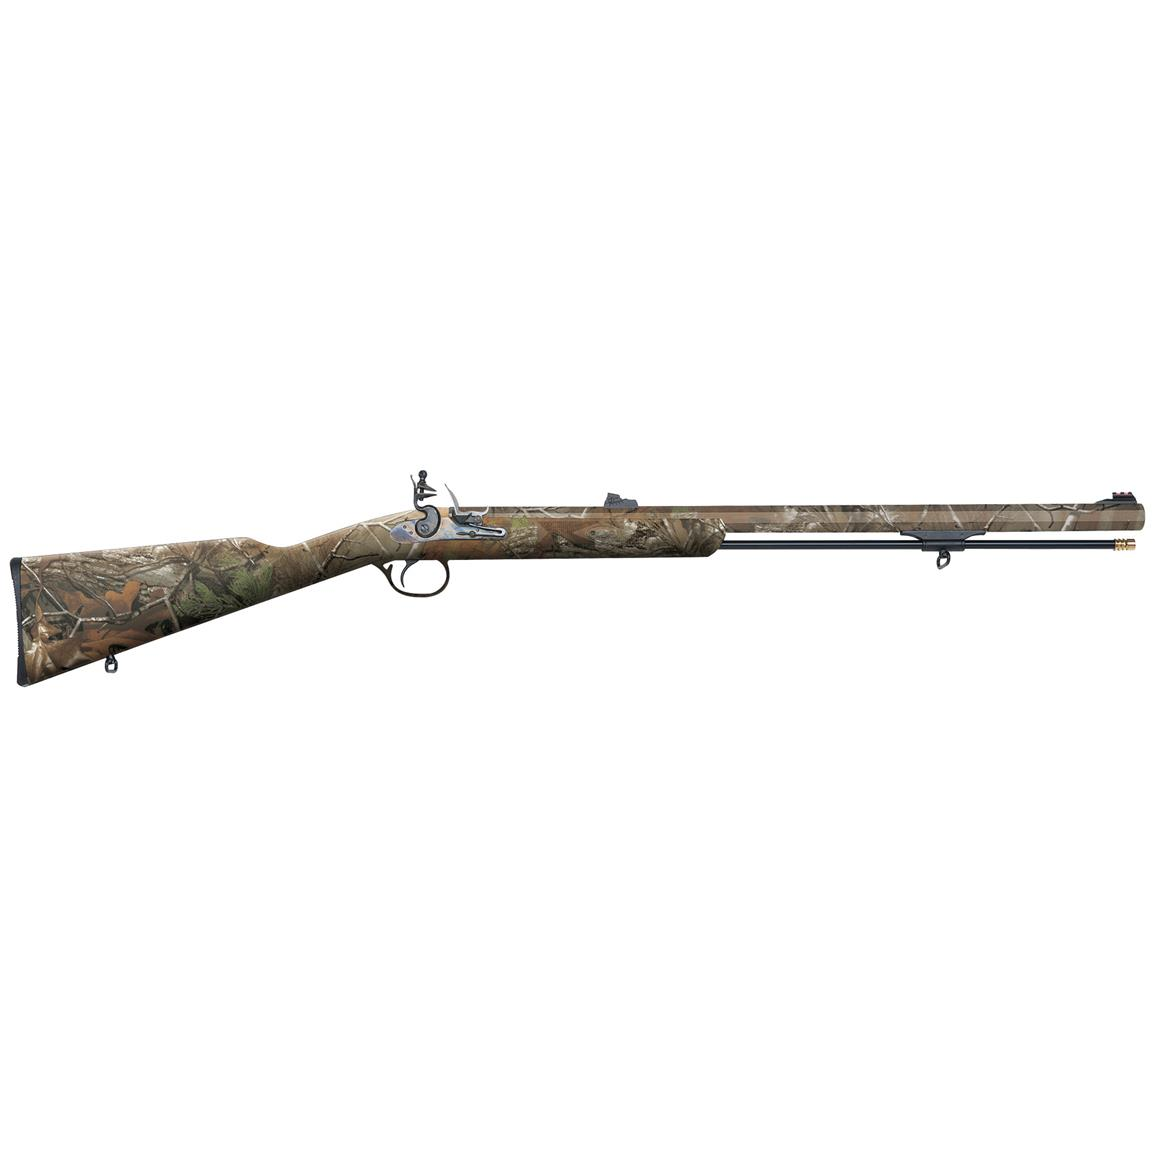 Traditions™ PA Pellet™ Accelerator Camo .50 Cal. Black Powder Flintlock Rifle